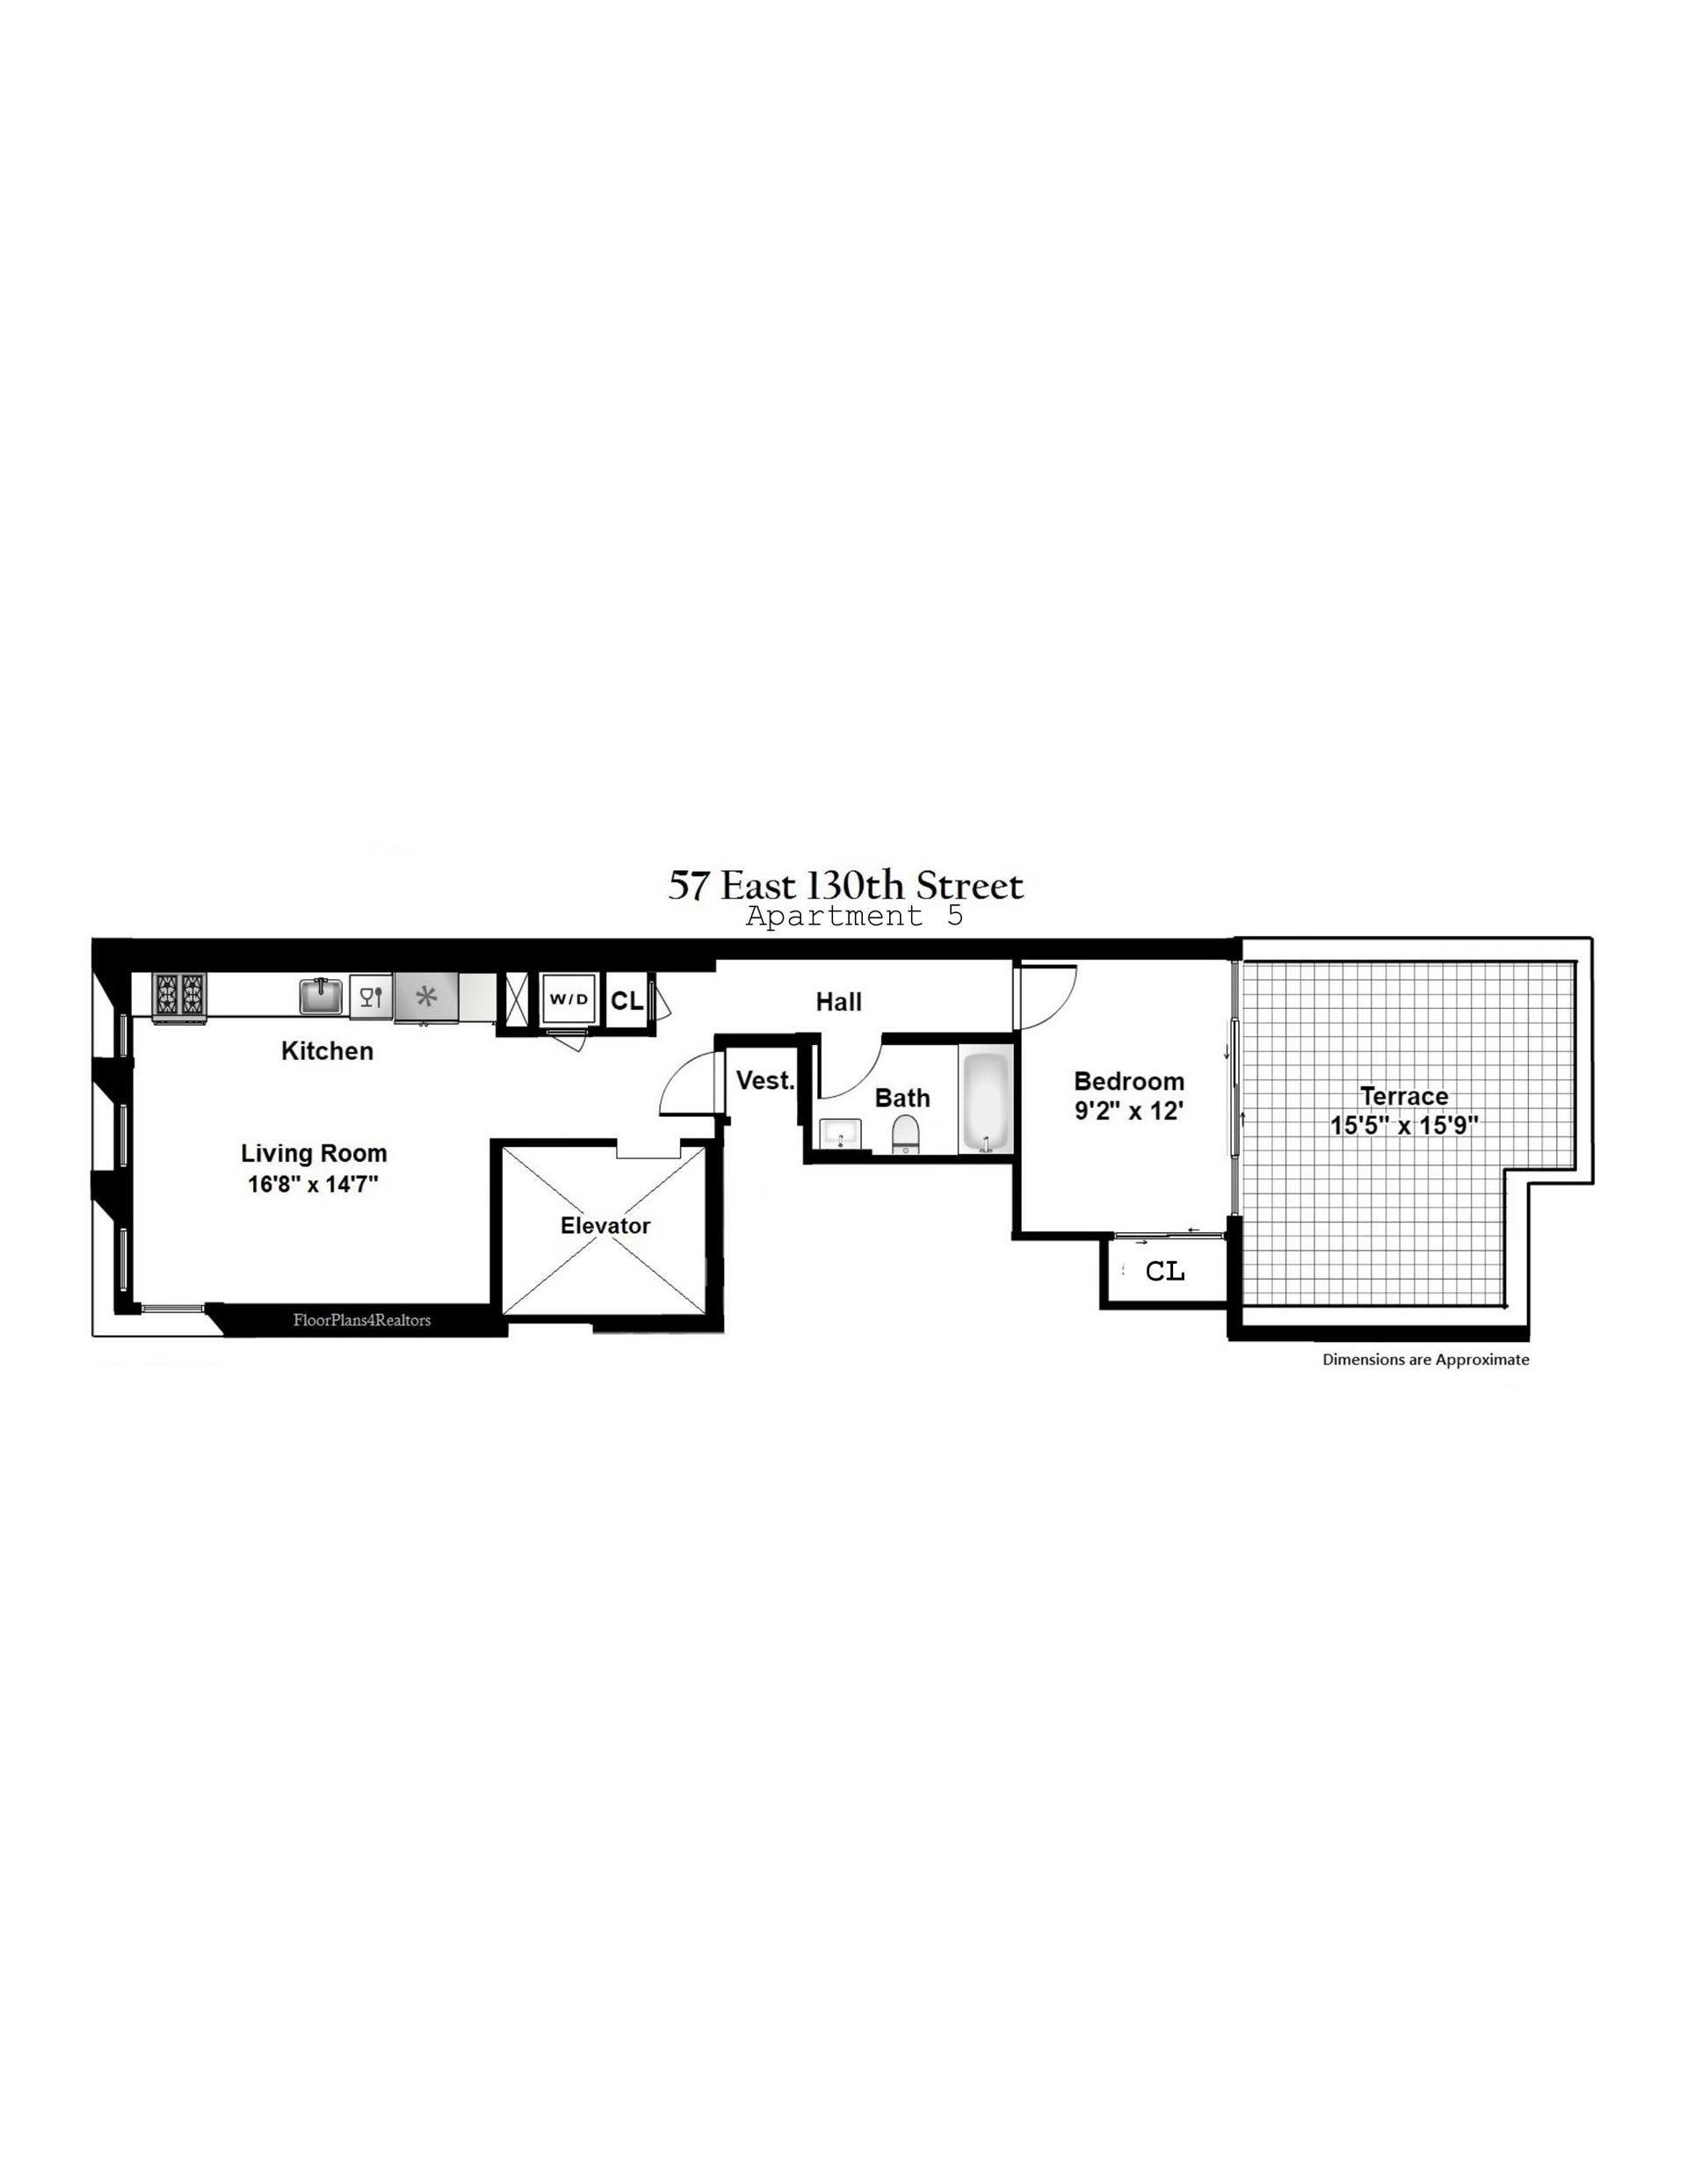 Floor plan of 57 East 130th St, 5 - Harlem, New York